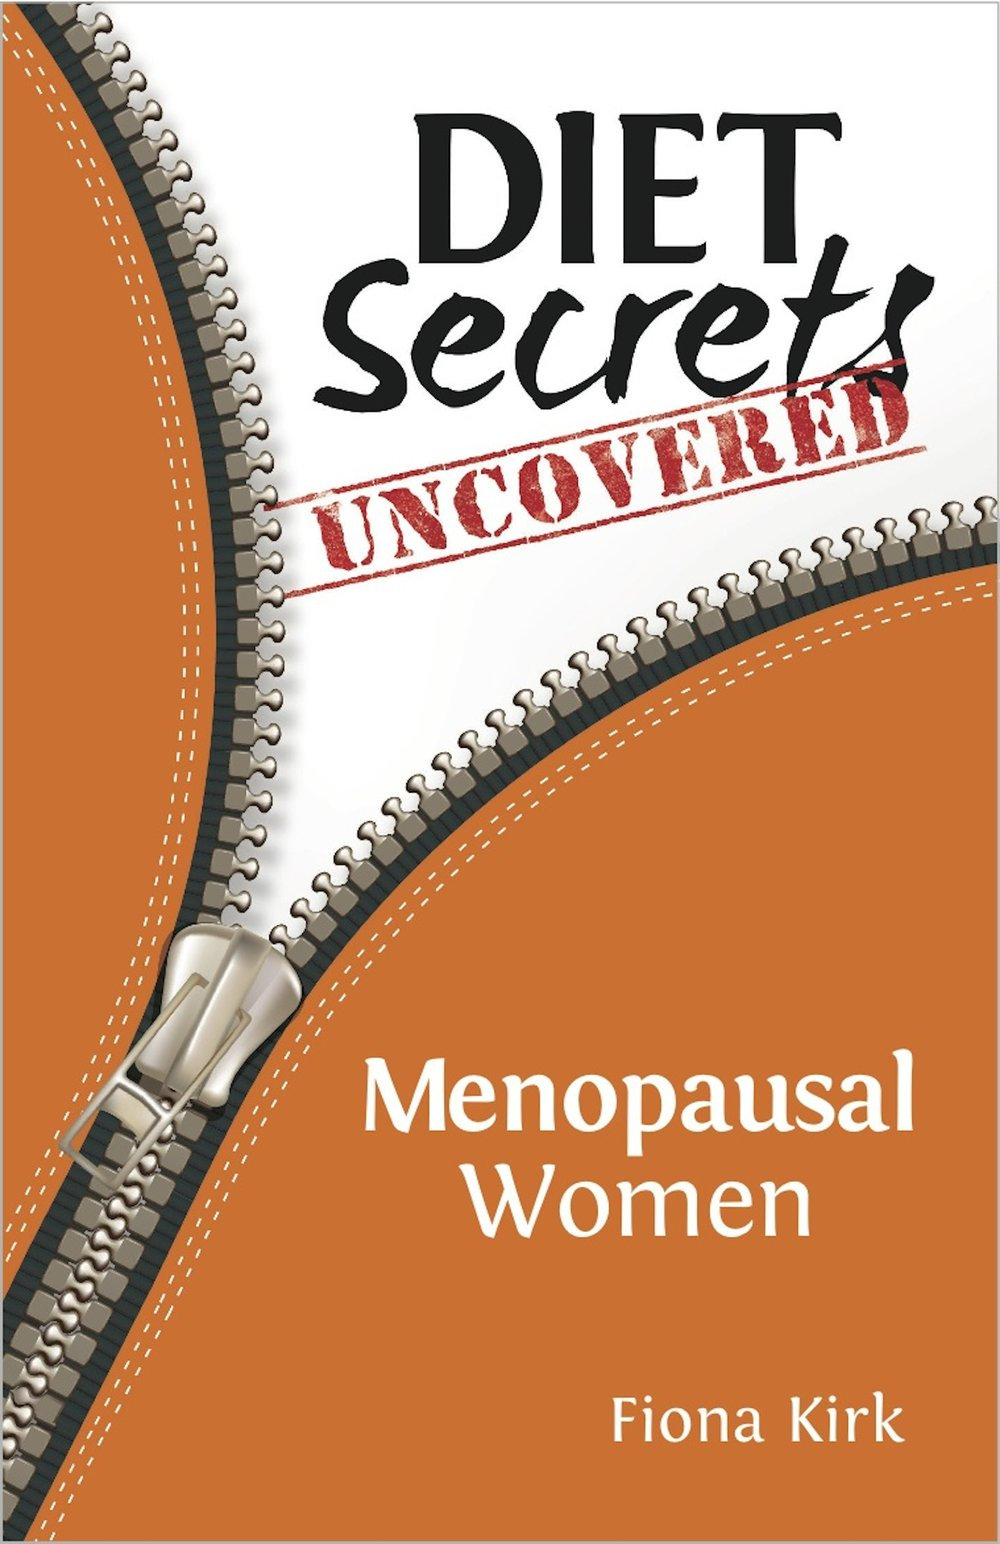 Diet Secrets Uncovered for Menopausal Women